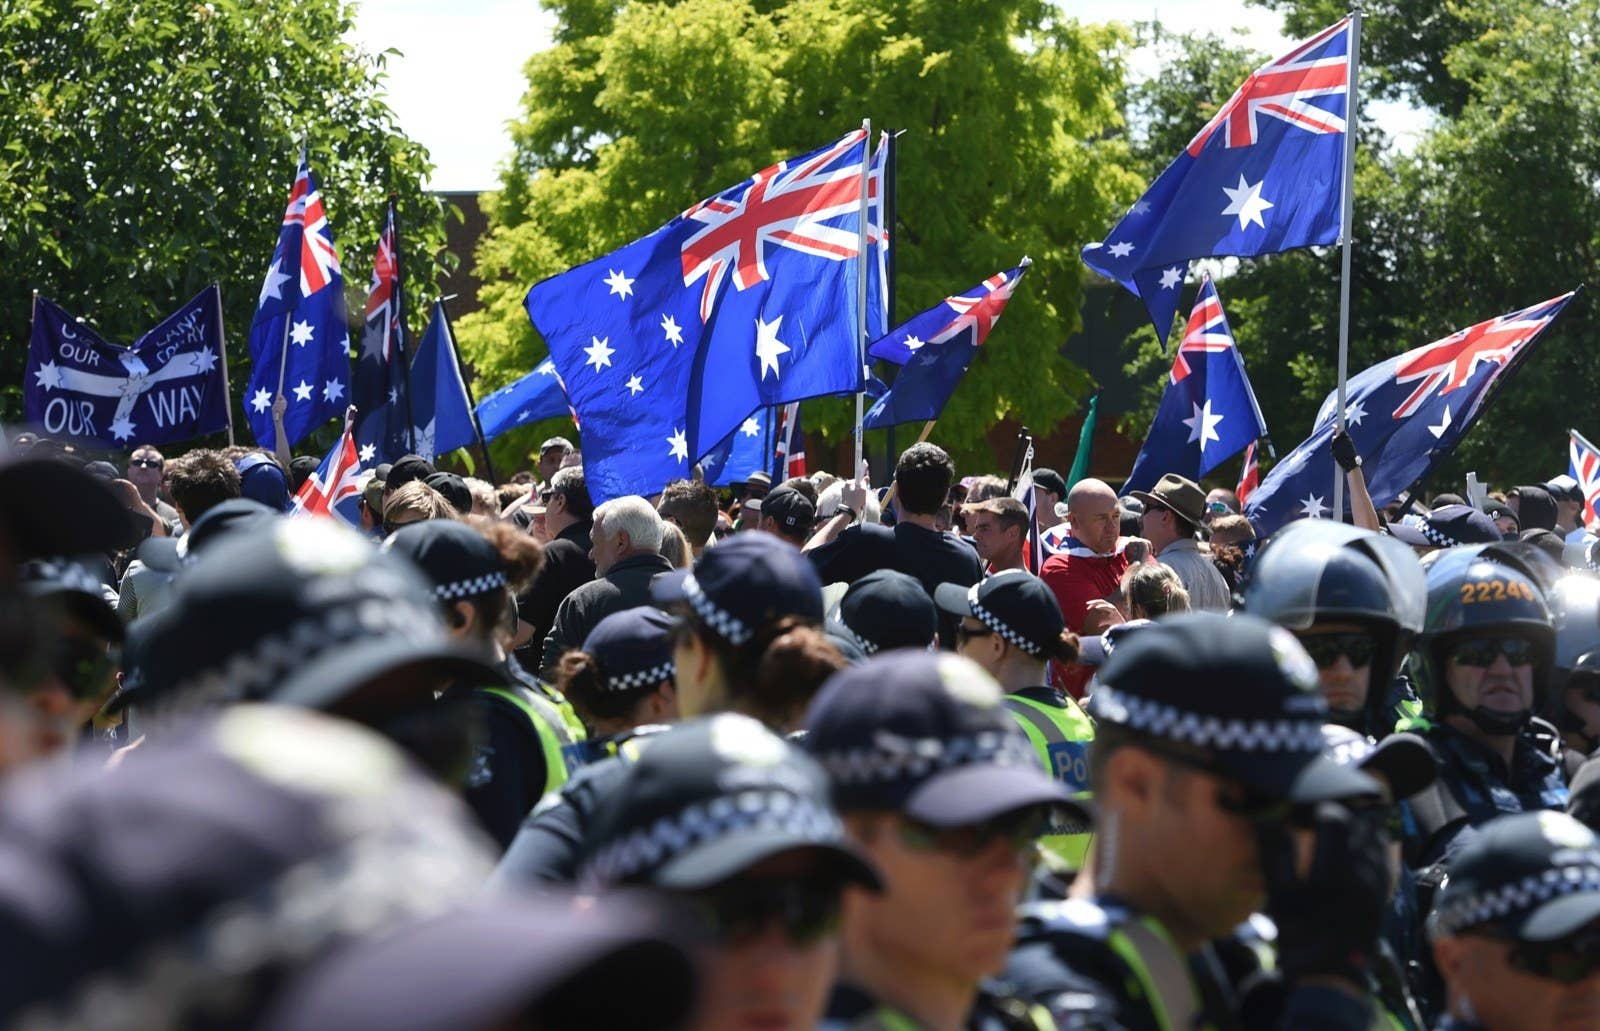 Anti-Islamic Reclaim Australia protesters wave flags and placards as they leave a rally against plans for a mosque being build in Melton, Sunday, Nov. 22, 2015.